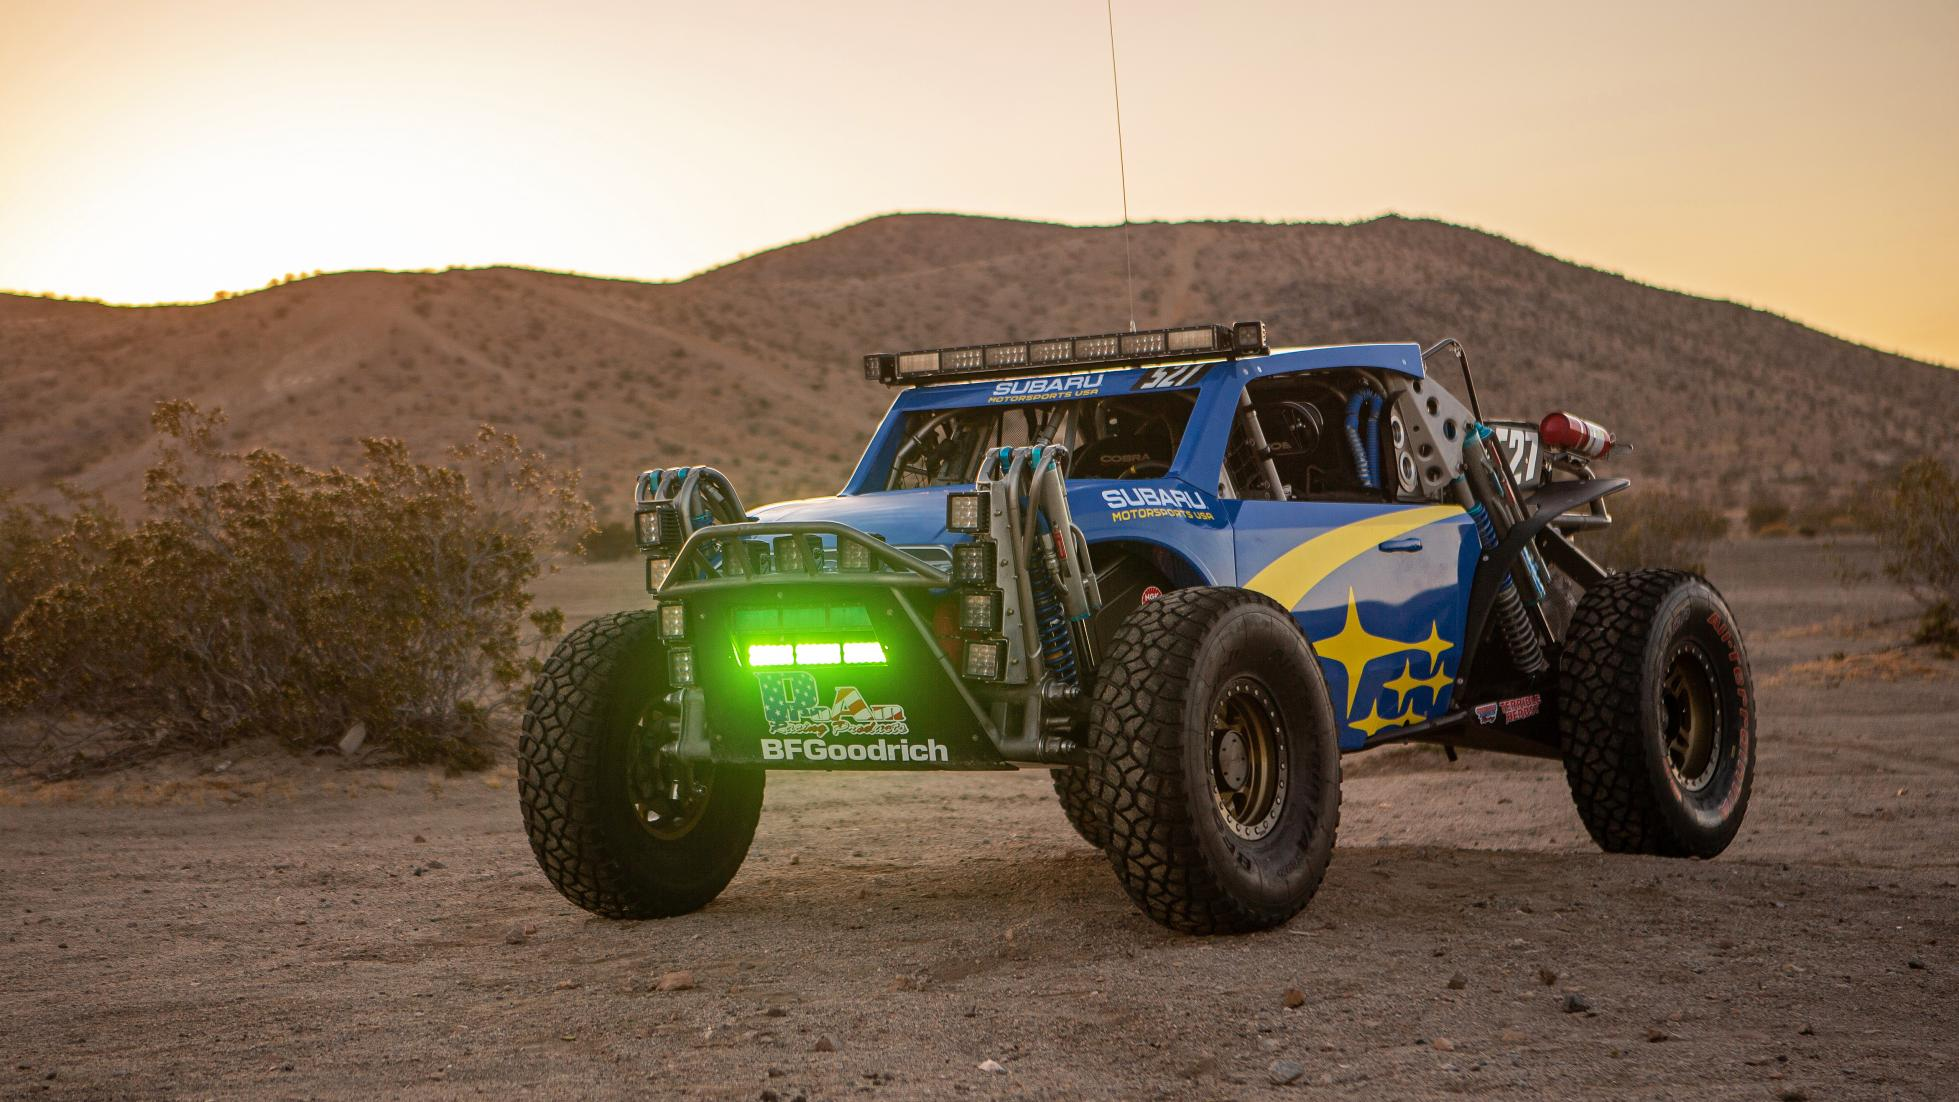 Grabowski Brothers conquer the Baja 500